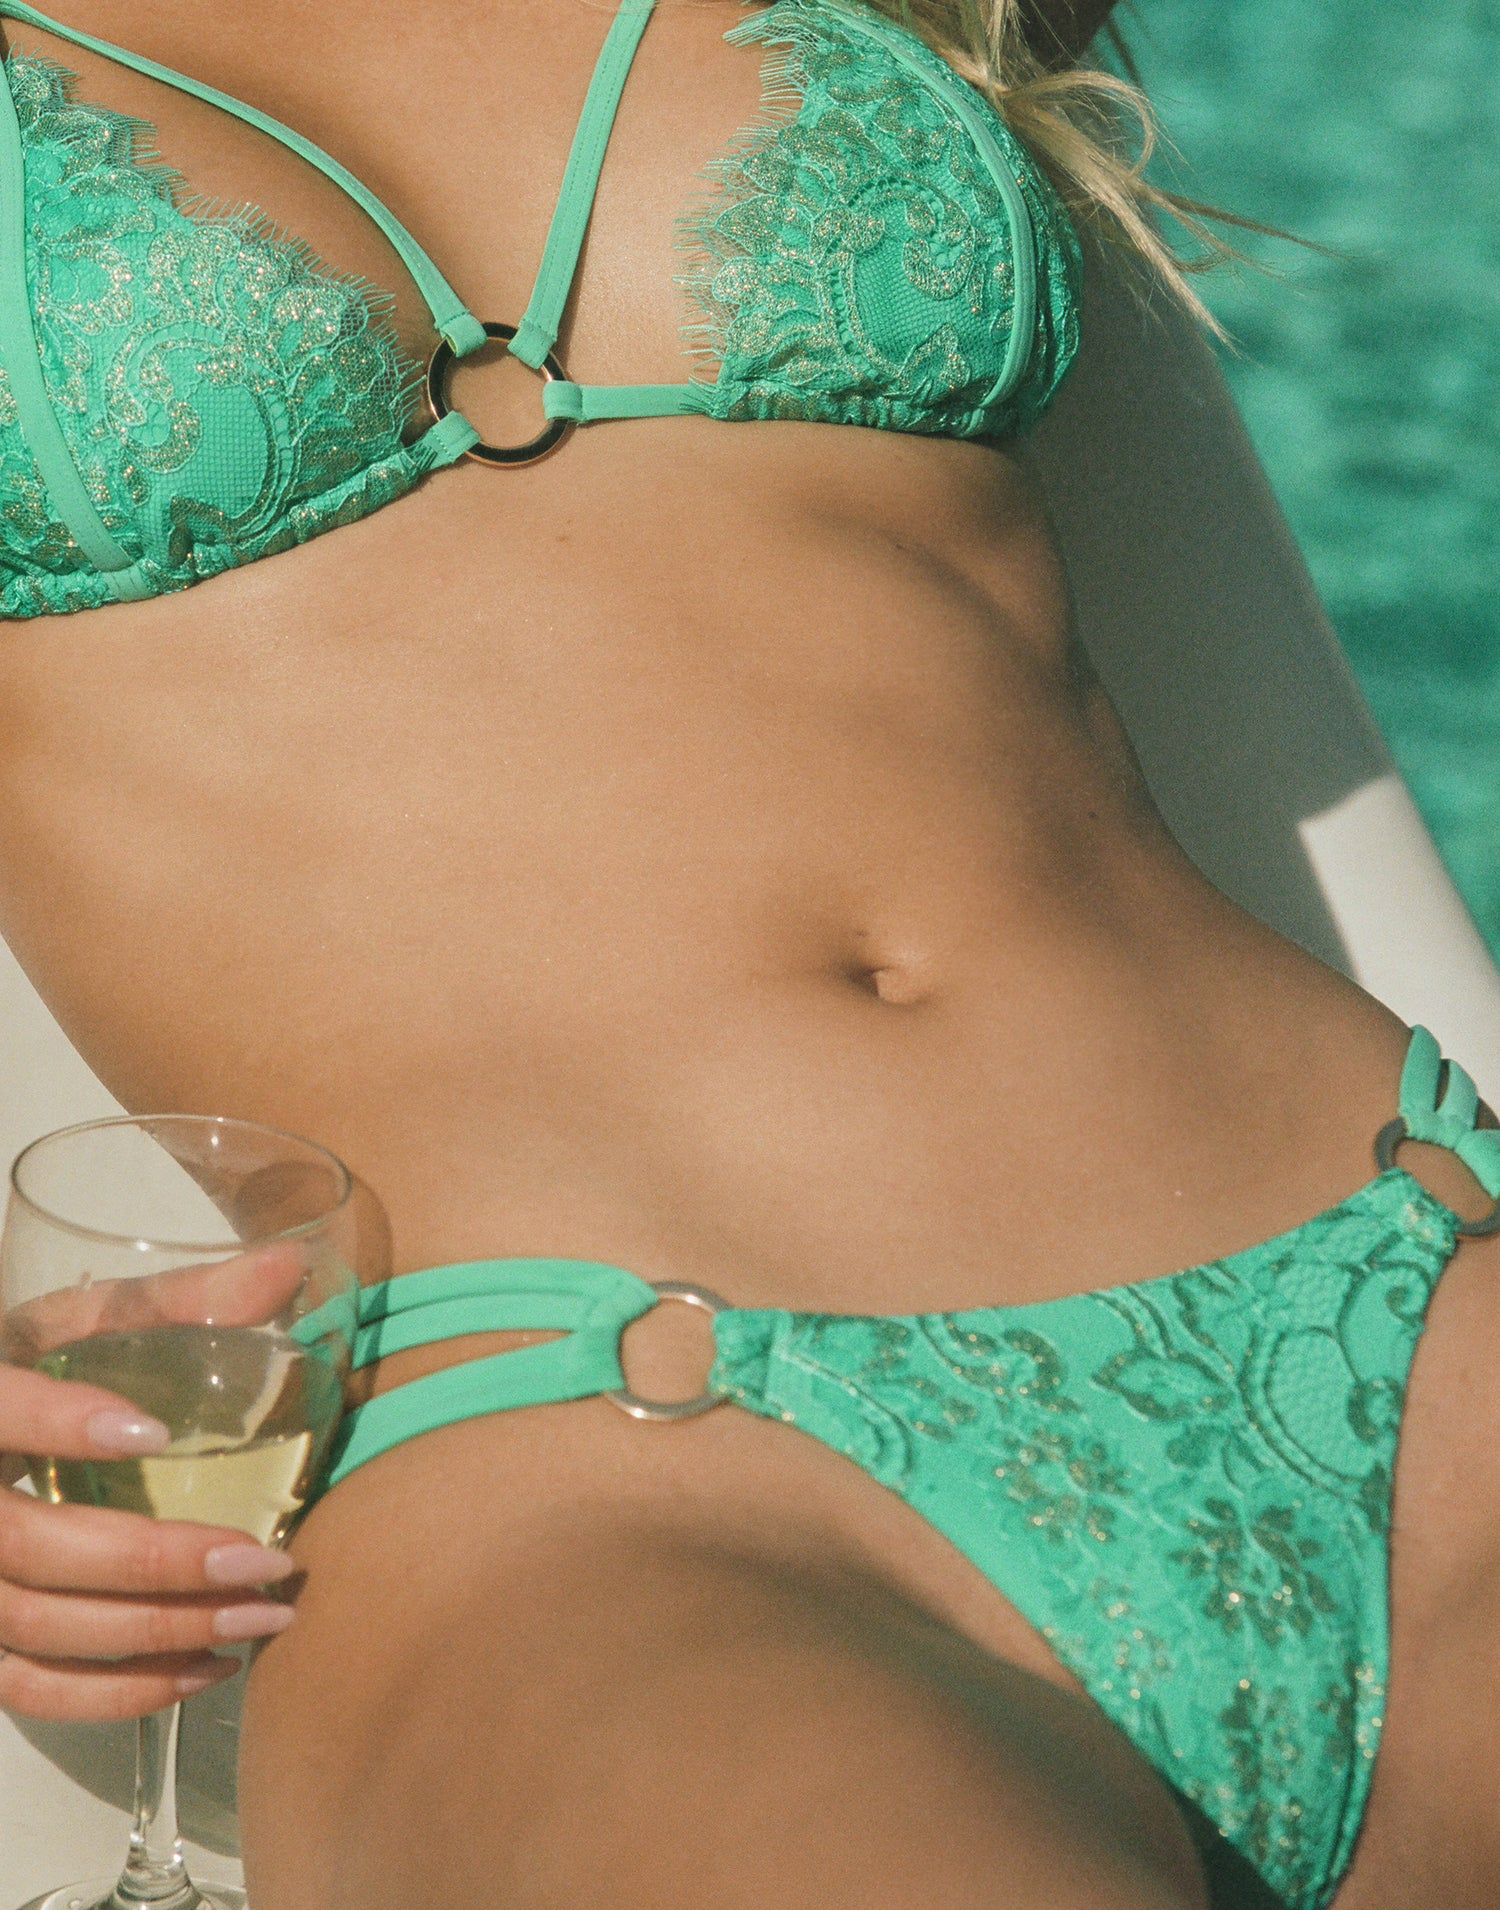 Gunpowder & Lace Skimpy Bikini Bottom in Seafoam with Strappy Details and Gold Ring Hardware - Detail Front View / Summer 2021 Campaign - Josie Canseco